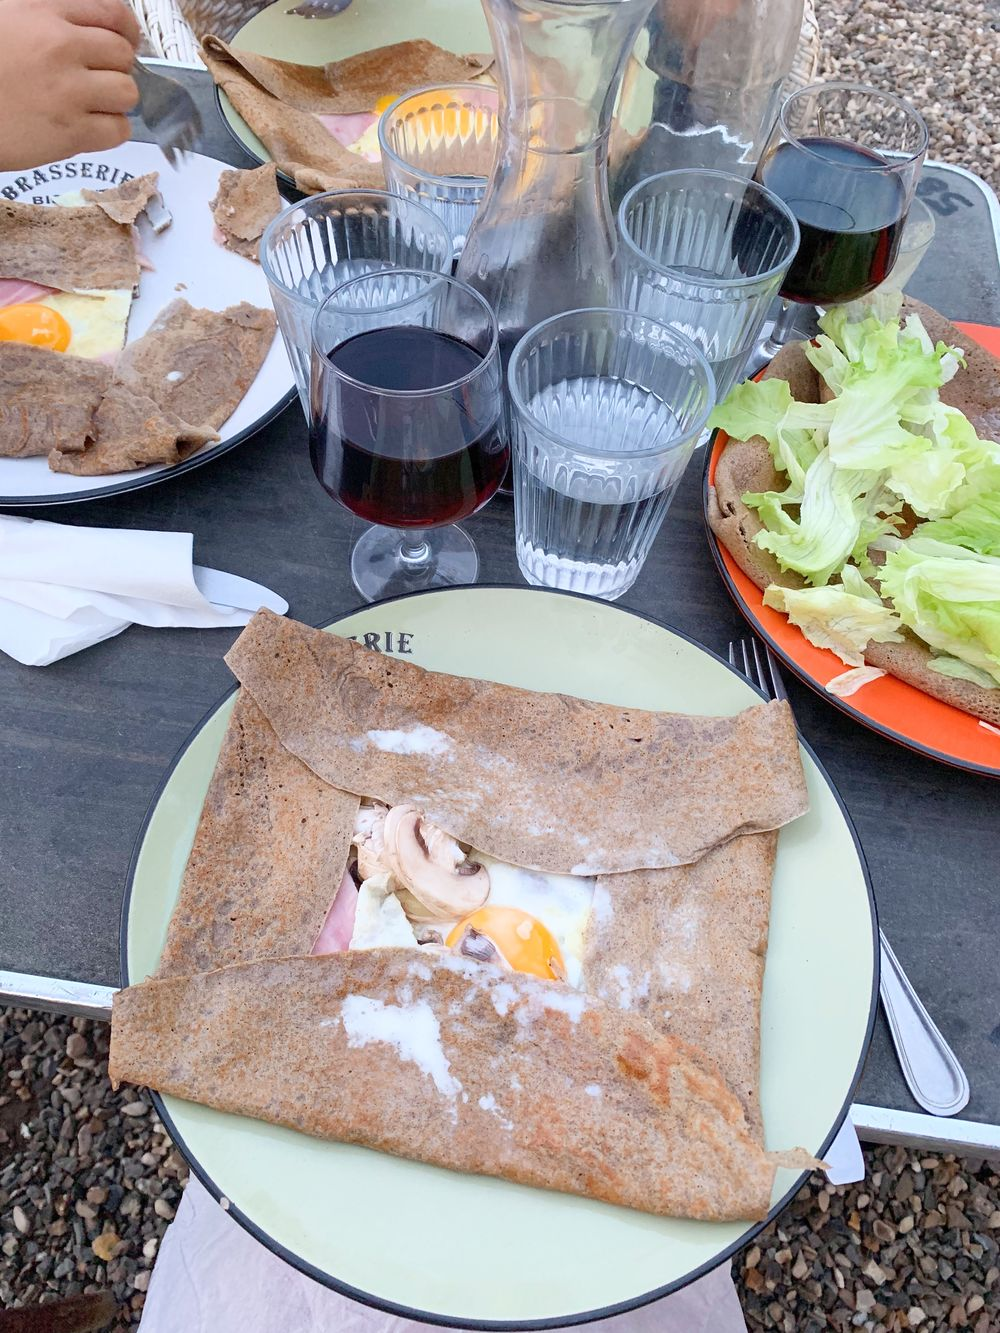 Crêpes in the Countryside Chantilly, France